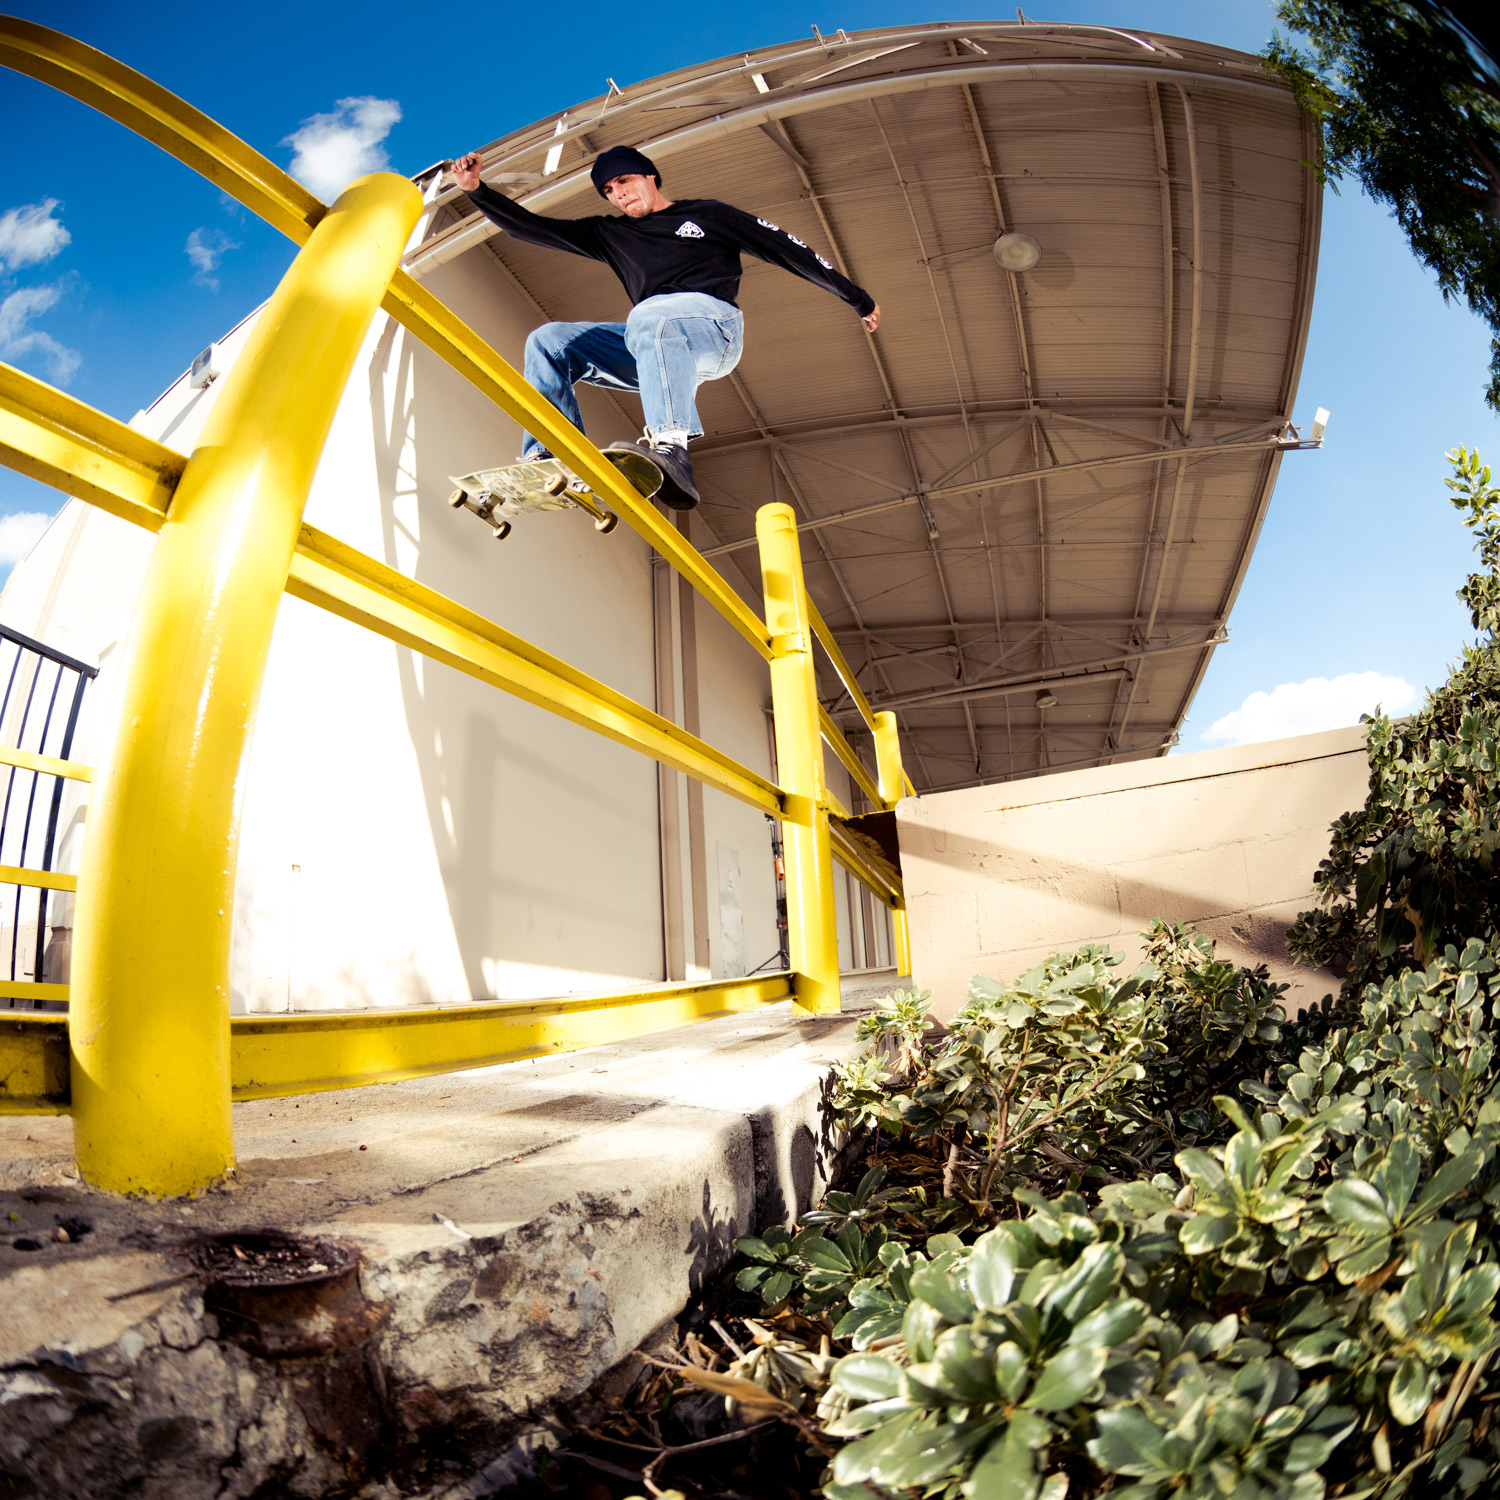 Sammy Montano  – Globe Part